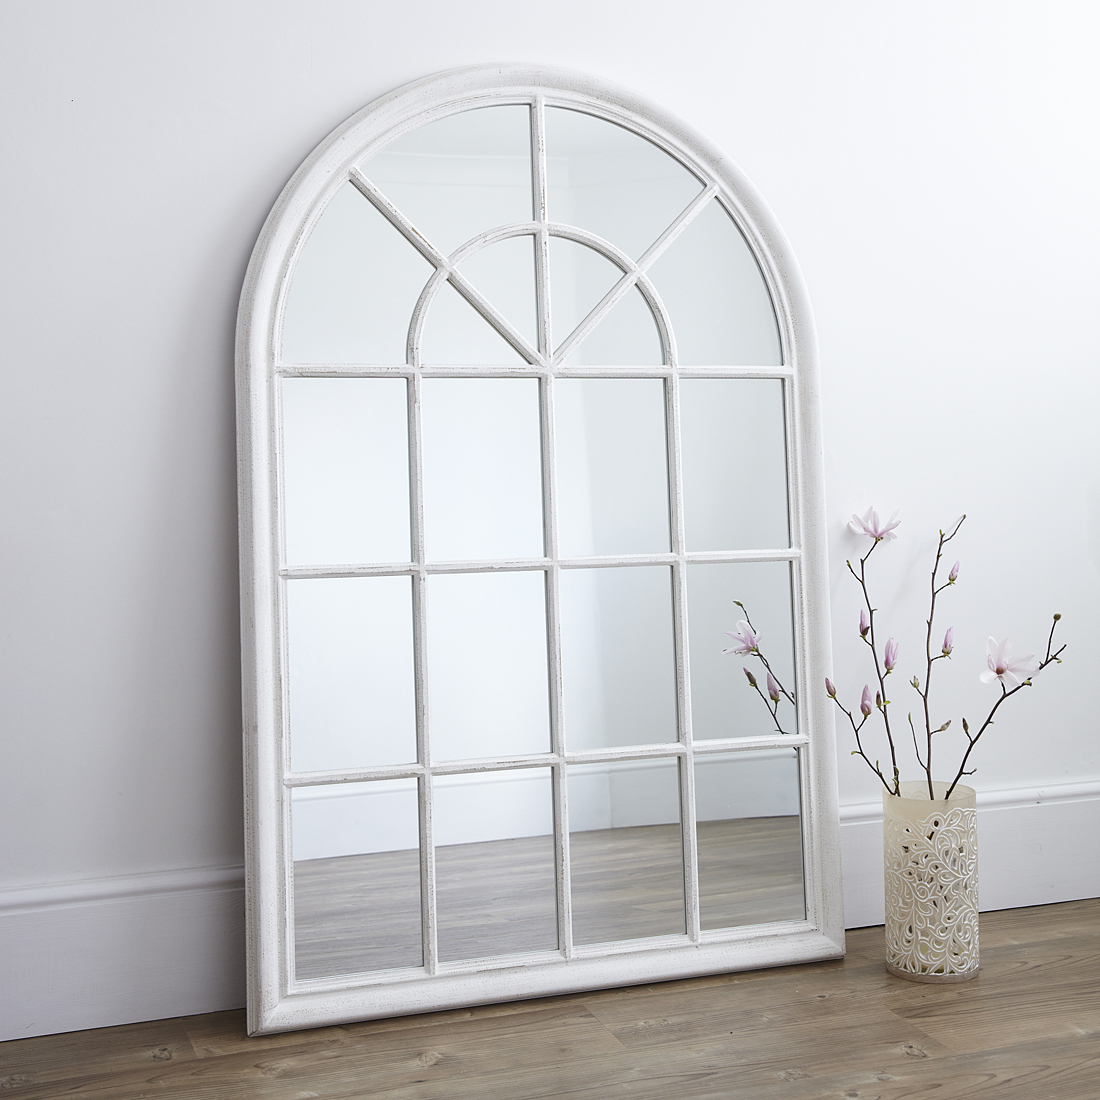 Fashionable Standard Wall Mirrors For White Arched Window Wall Mirror (View 8 of 20)